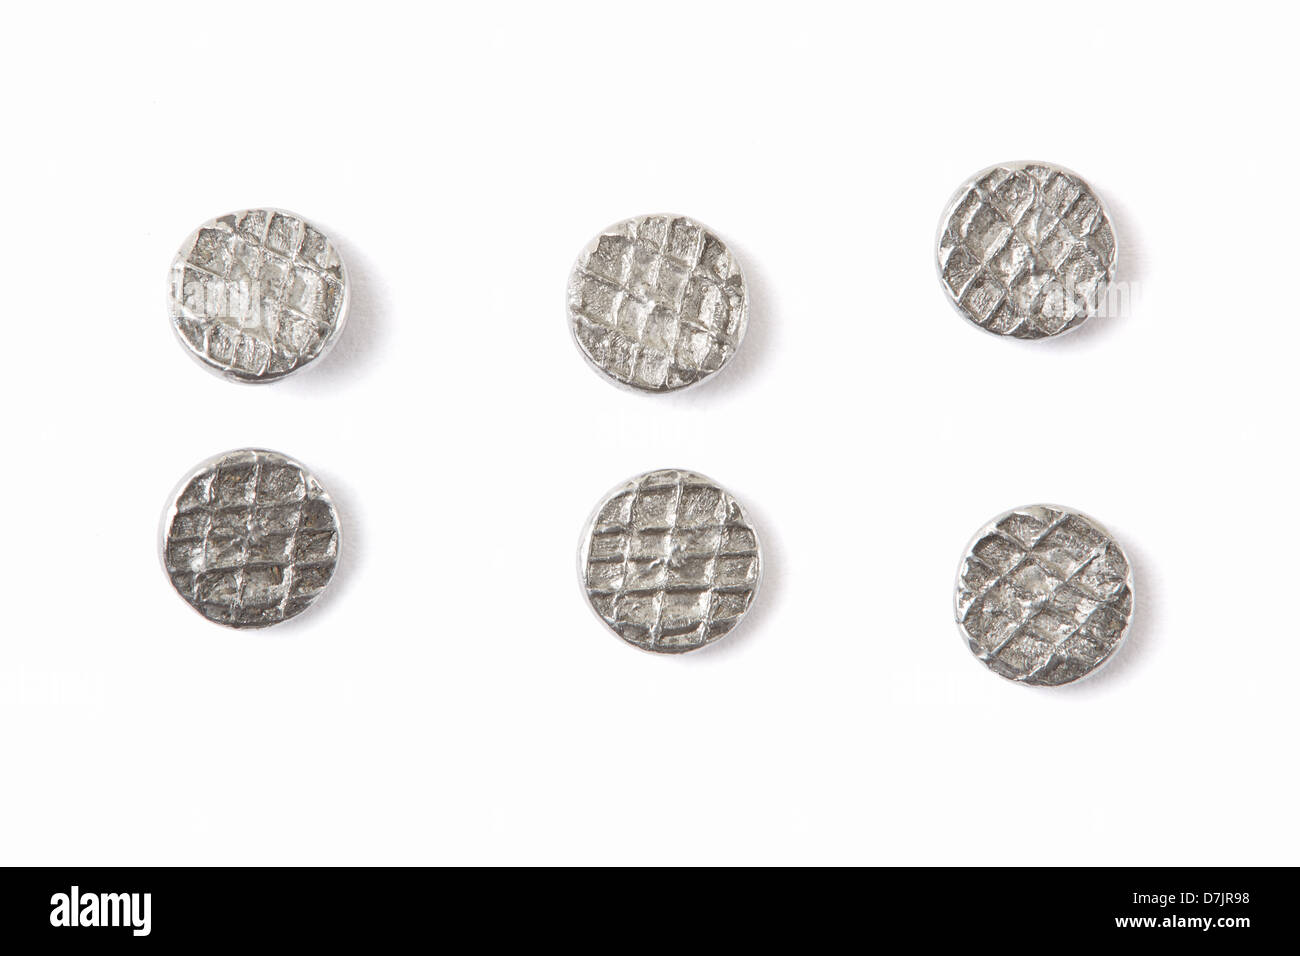 Metal nail heads collection - Stock Image